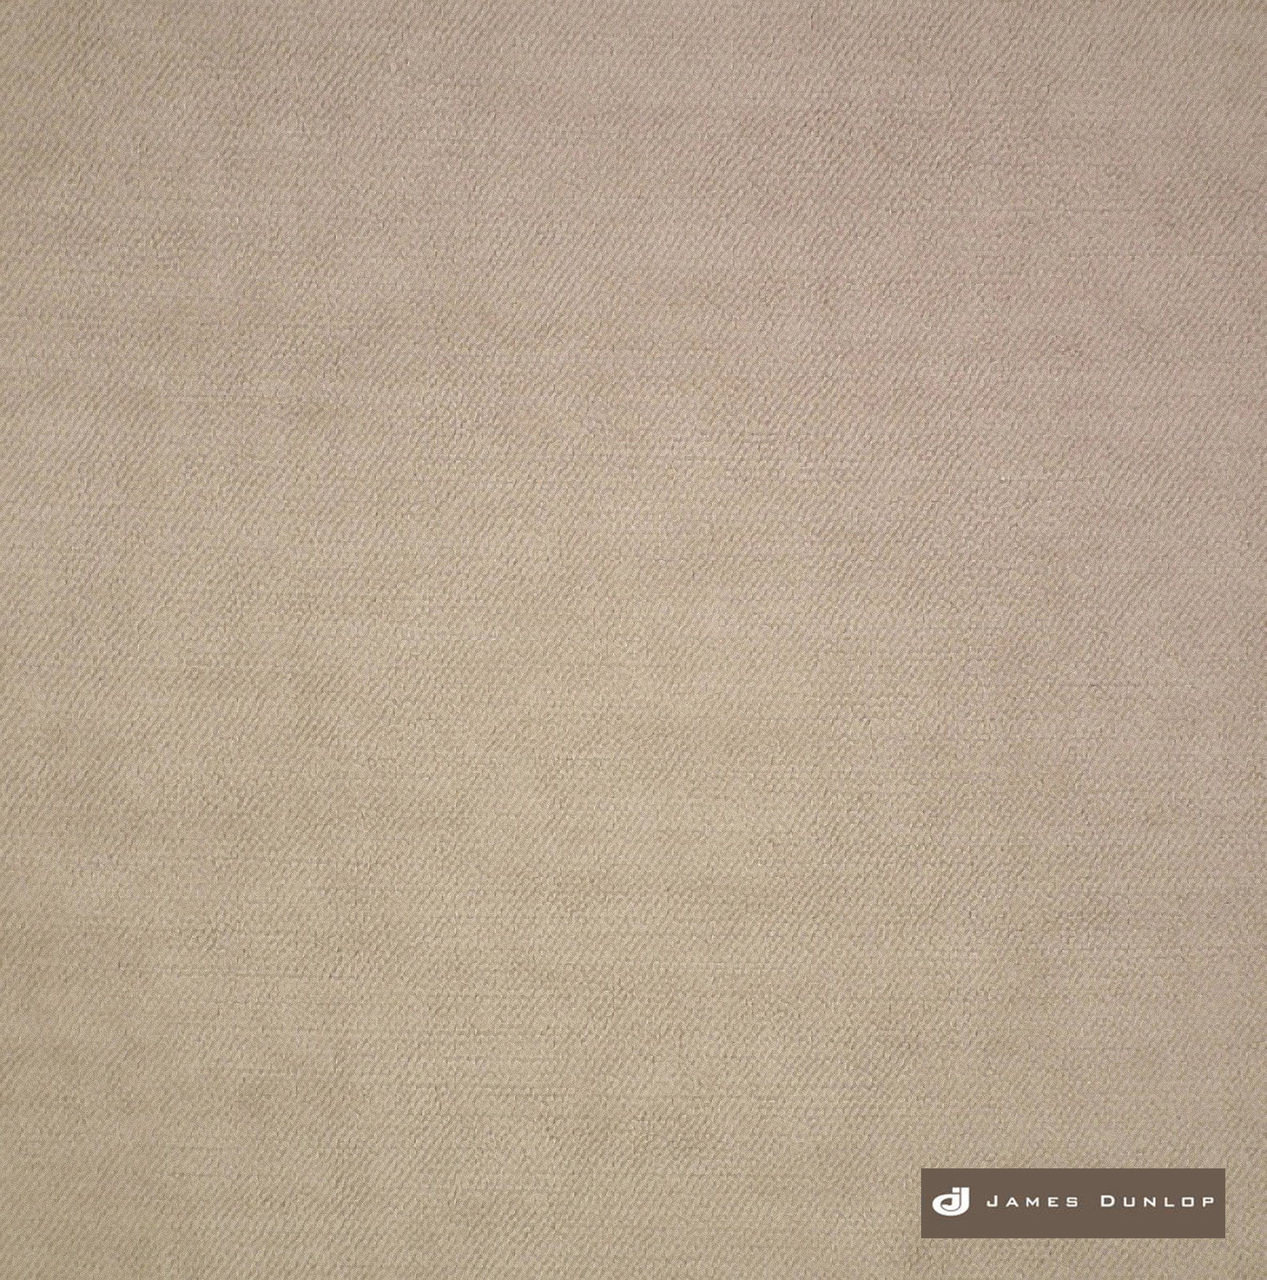 James Dunlop Evolution - Mink  | Curtain & Upholstery fabric - Fire Retardant, Plain, Fibre Blends, Tan, Taupe, Velvet/Faux Velvet, Washable, Commercial Use, Dry Clean